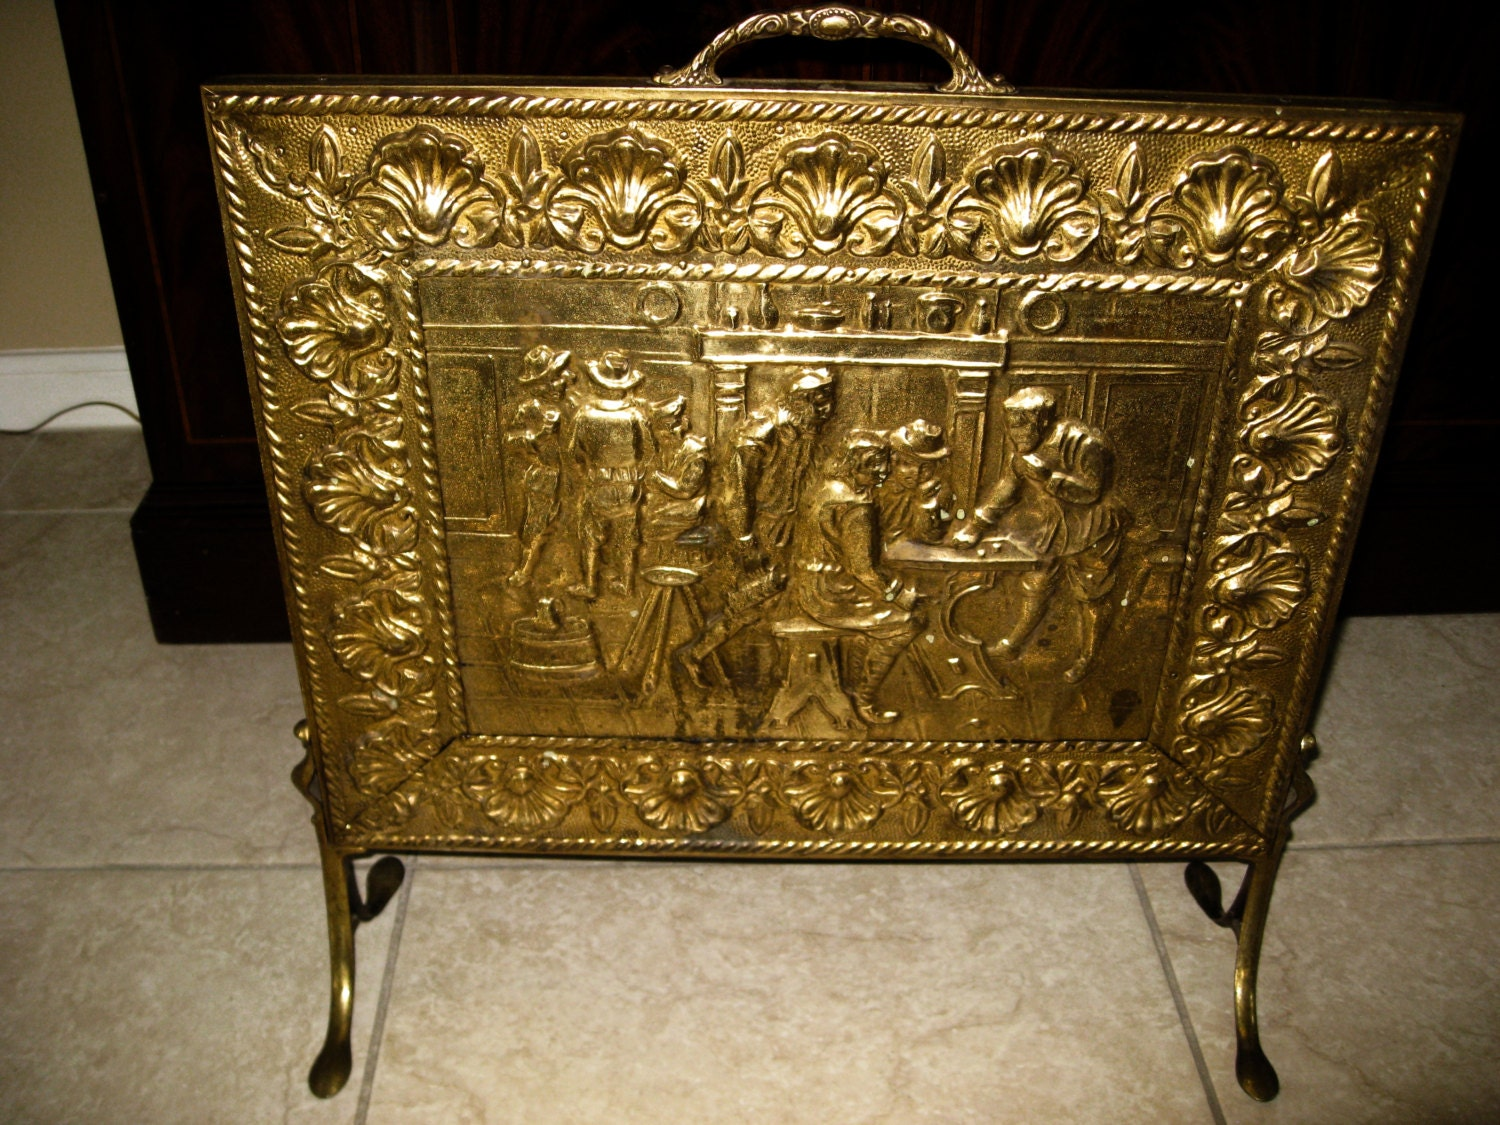 antique fireplace screens images reverse search